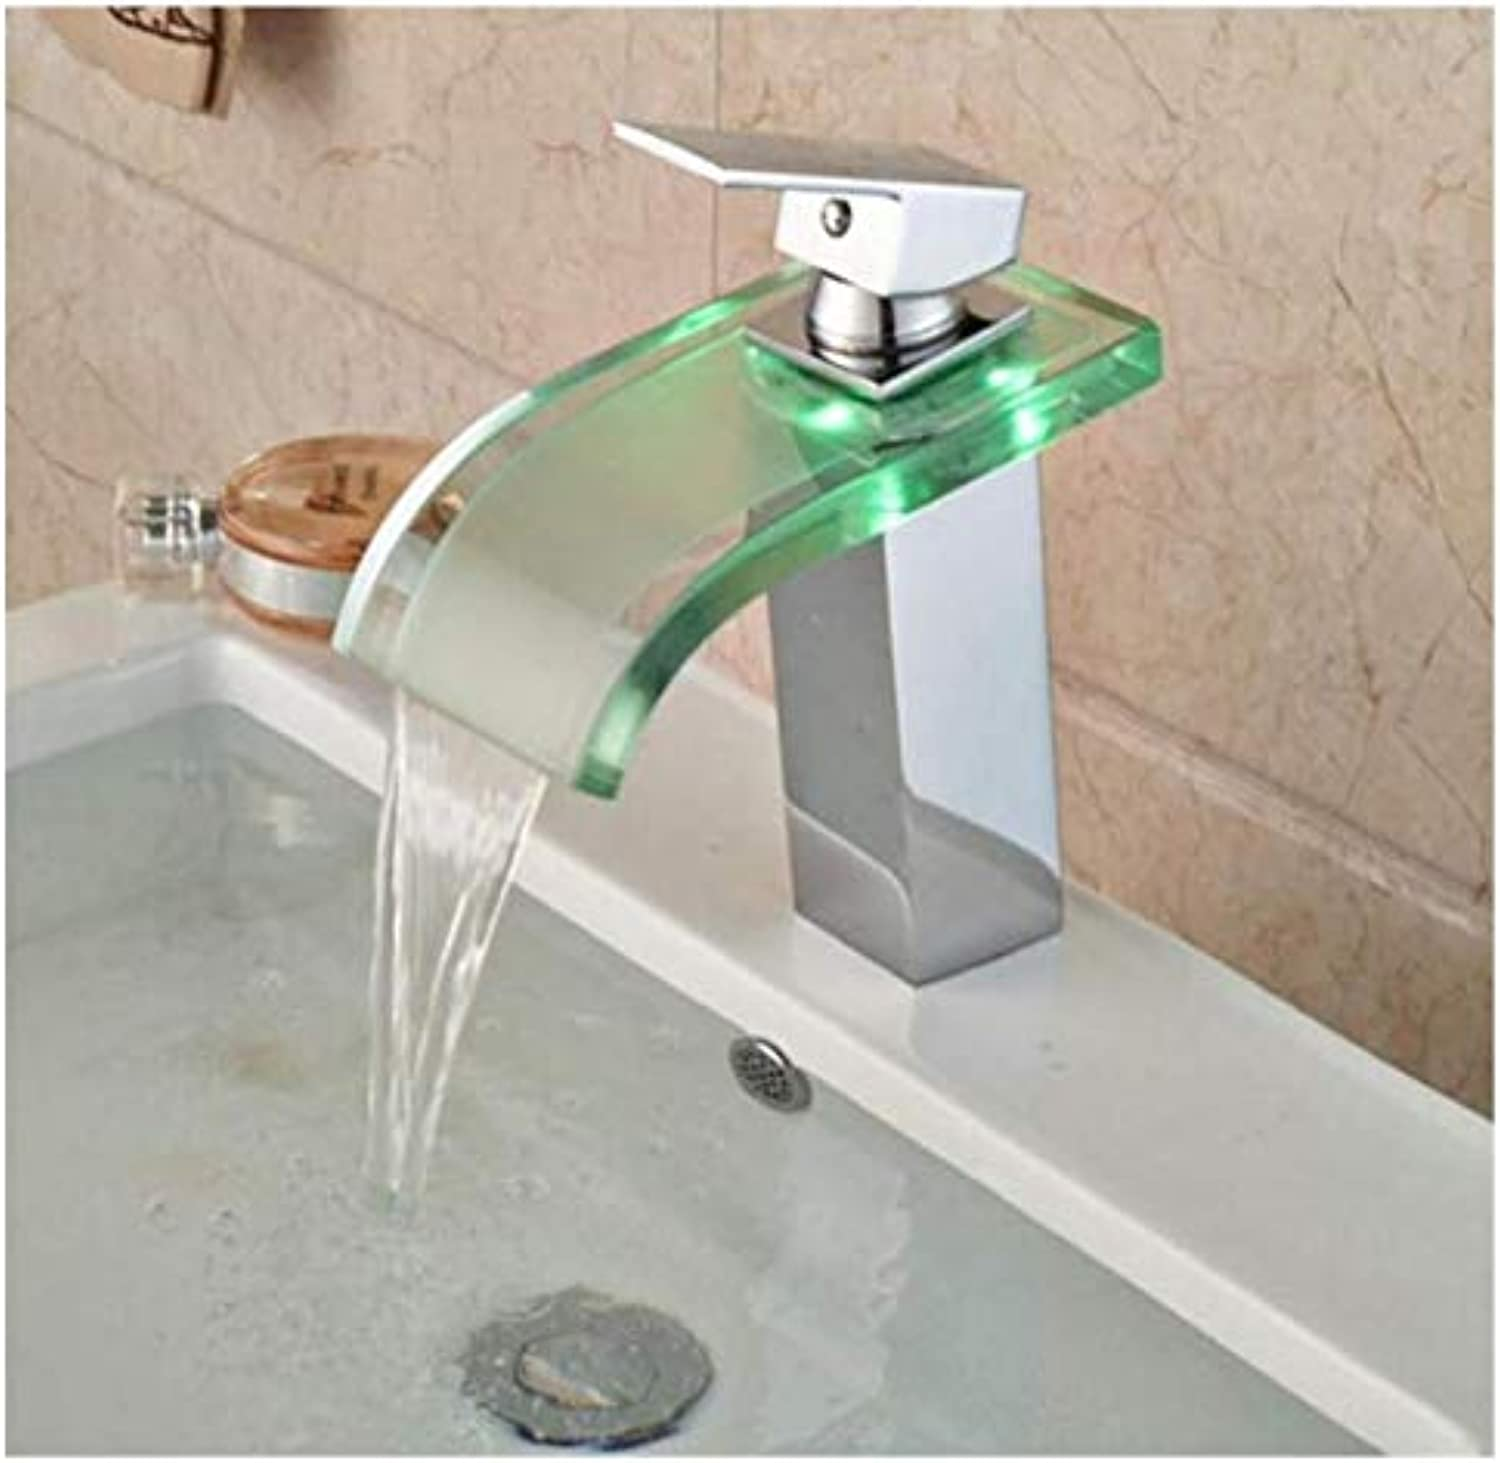 Chrome-Plated Adjustable Temperature-Sensitive Led Faucetsingle Handle Square Led Light Bathroom Sink Mixer Water Taps